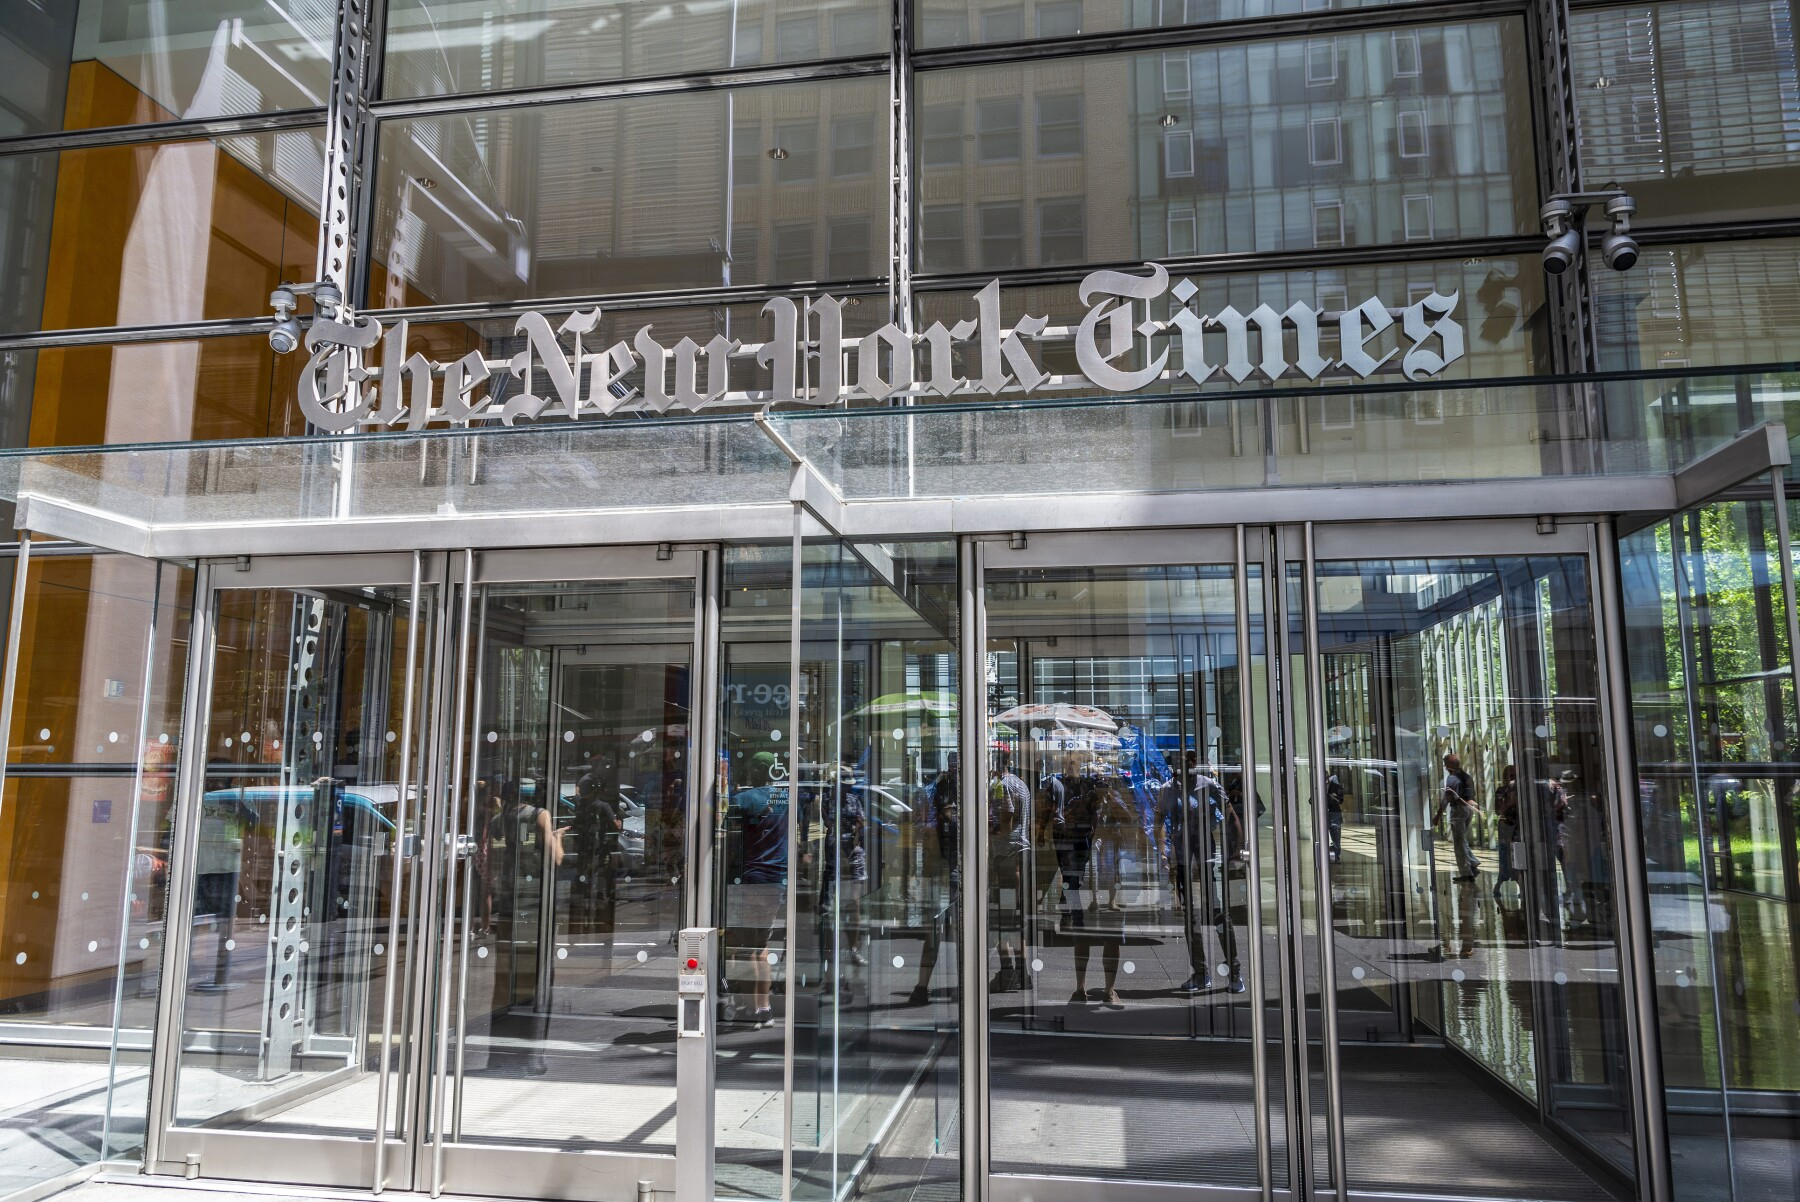 The New York Times headquarters in New York City, USA